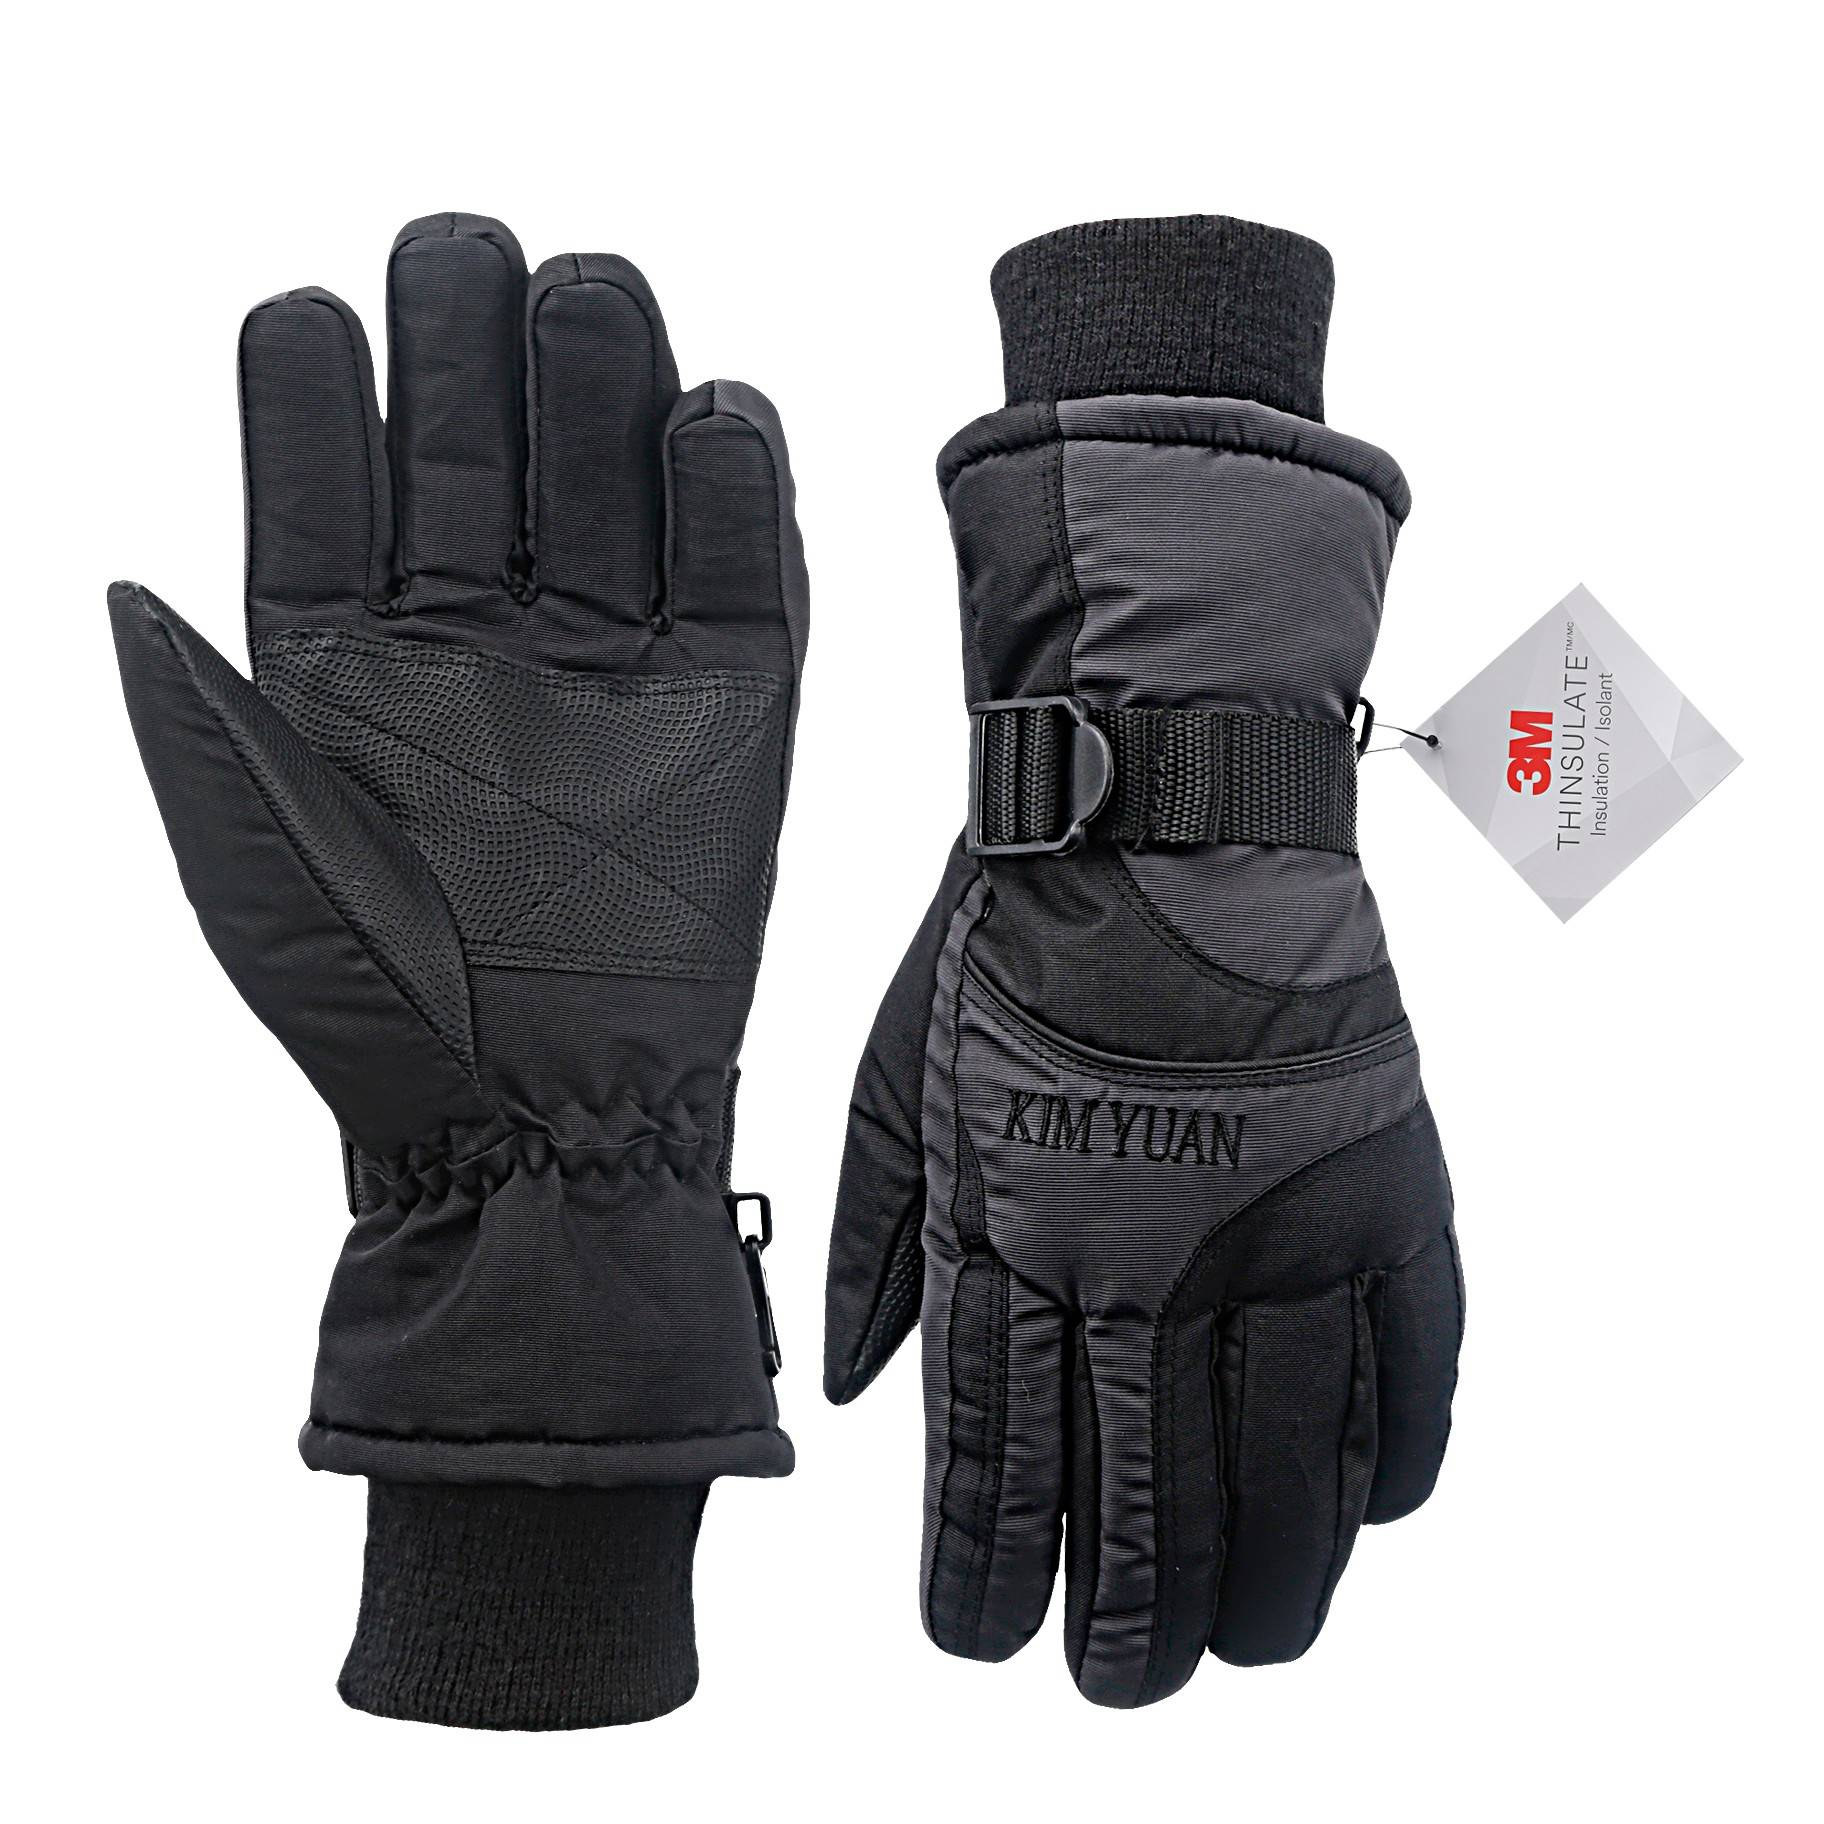 KIM YUAN Ski Snowboard Winter Gloves - Waterproof,3M Thinsulate, Cold Weather Gloves for Men & Women